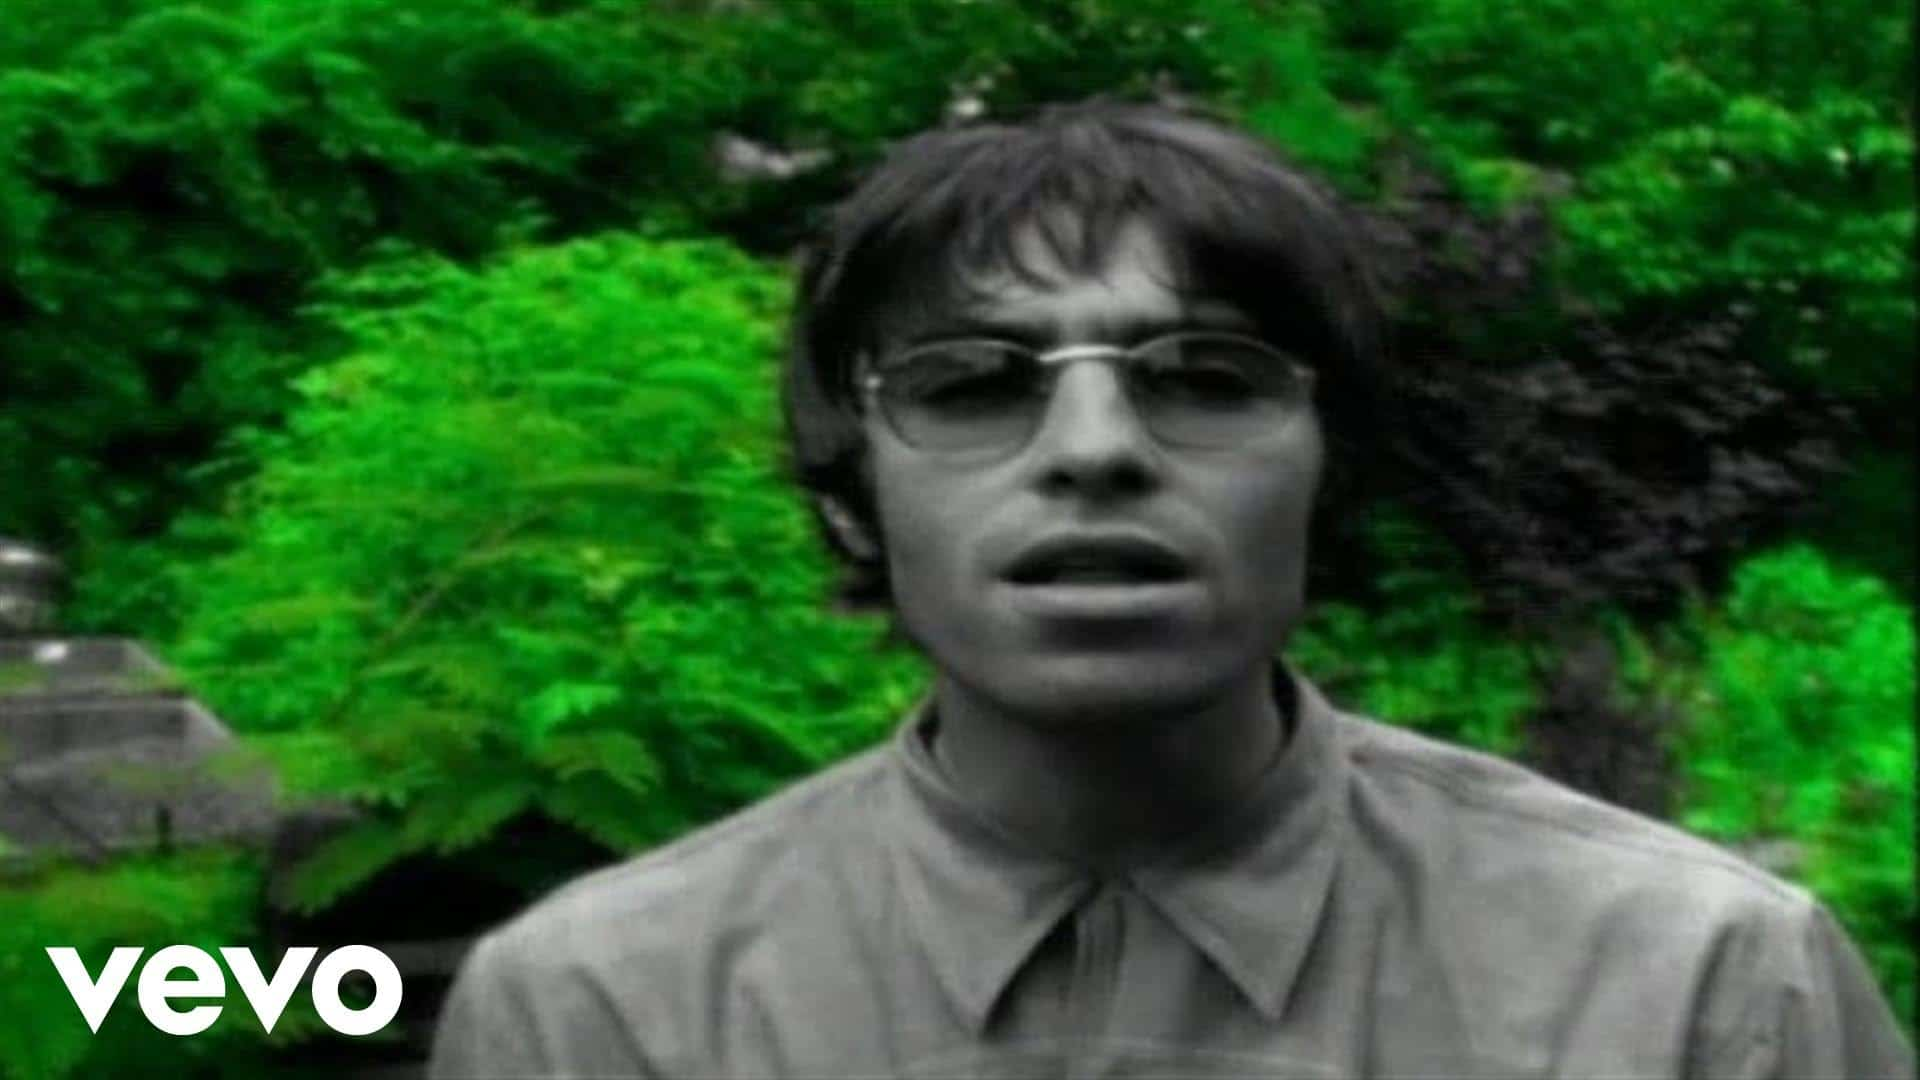 Oasis – Live Forever